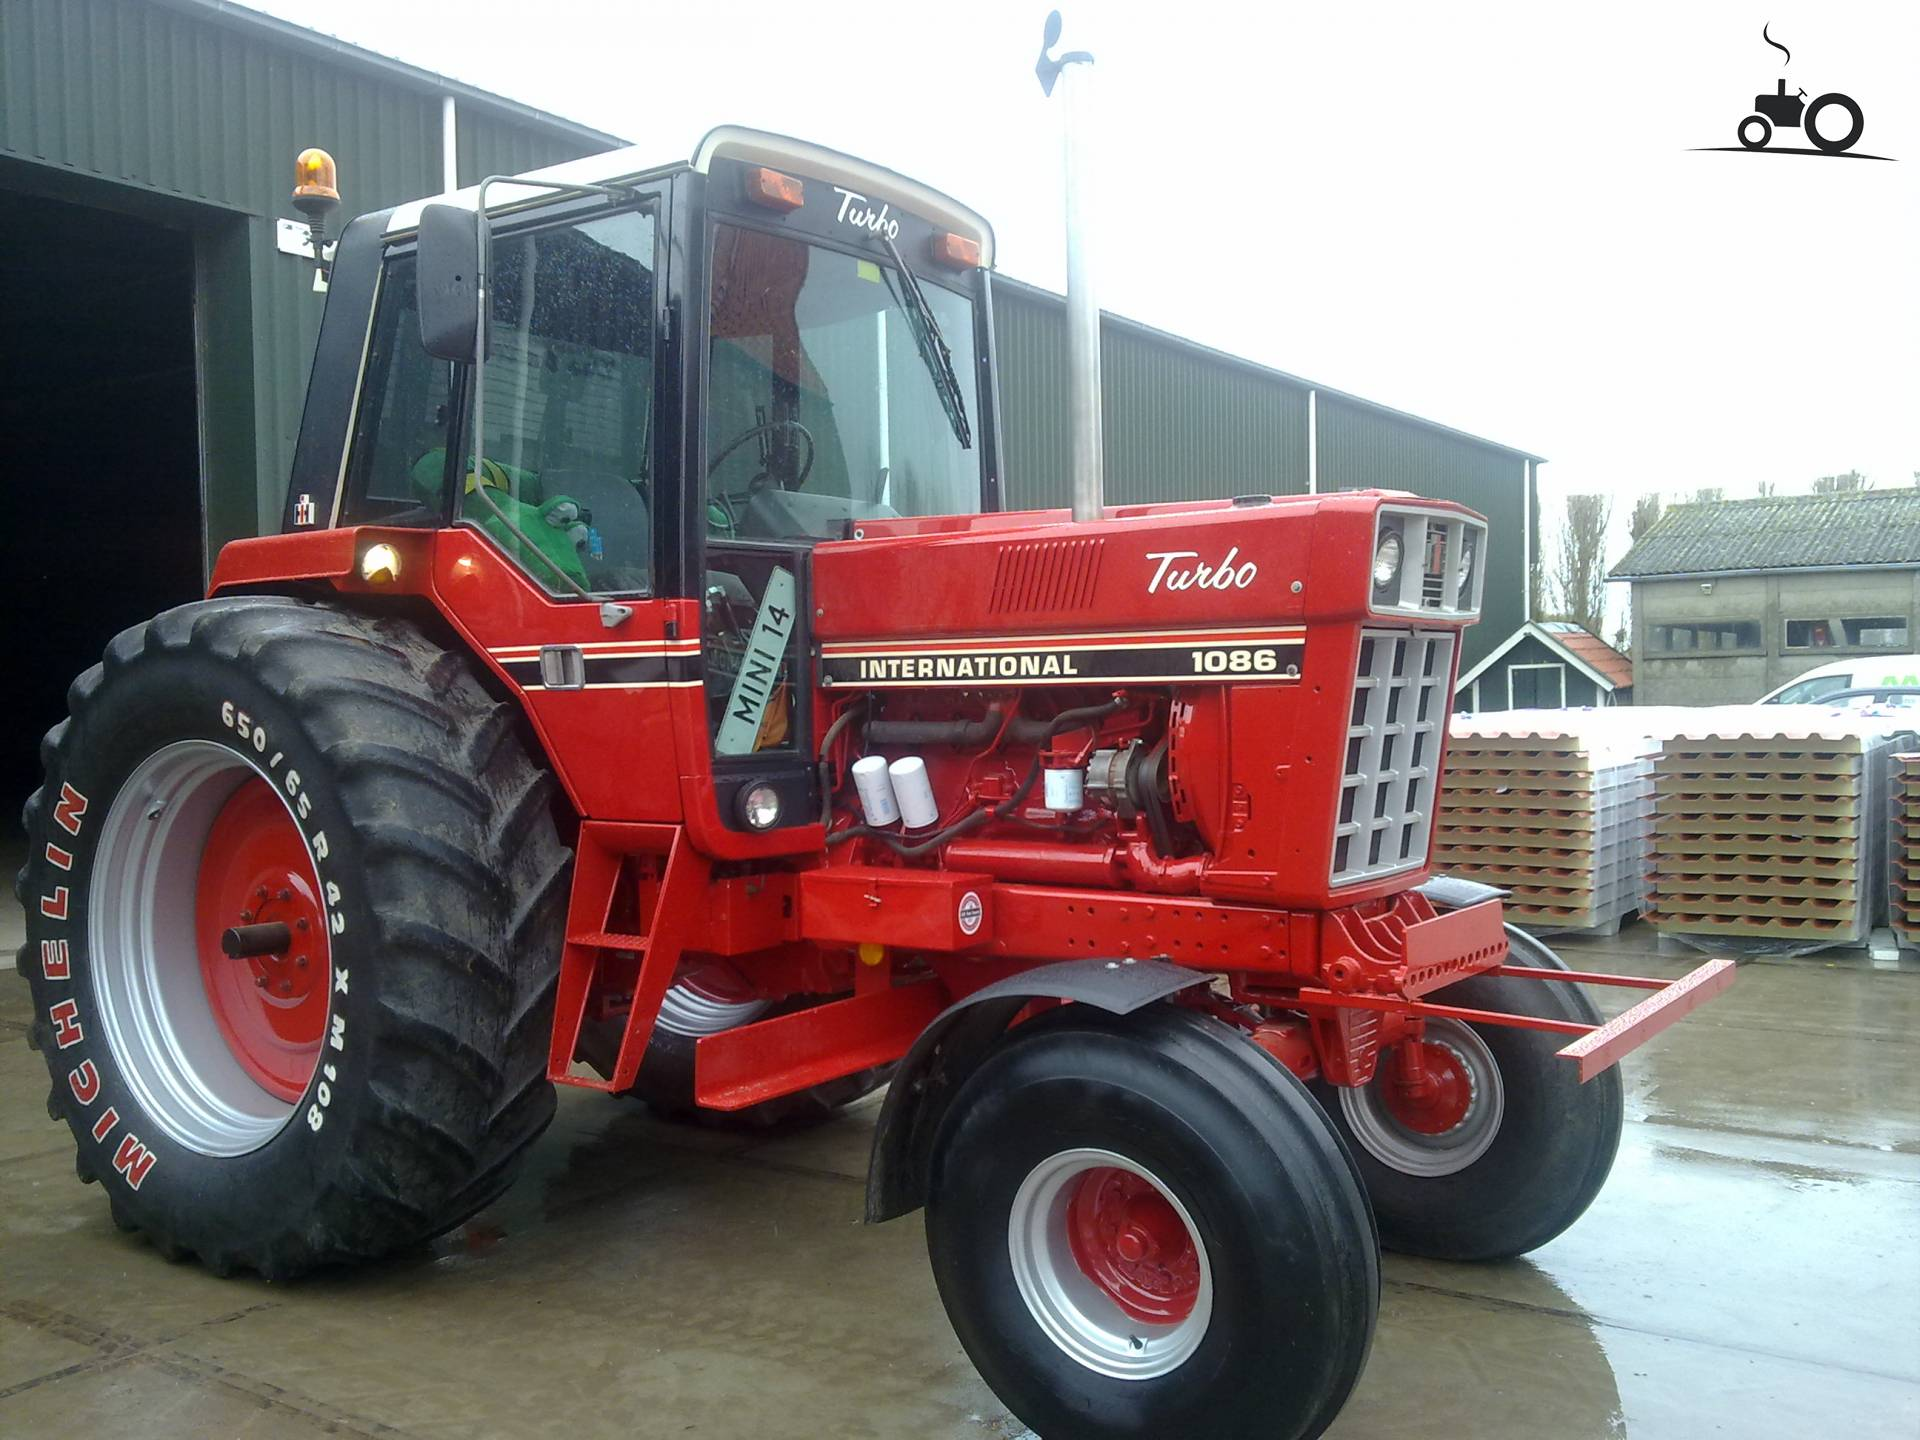 http://pictures.tractorfan.nl/groot/i/international/324260-1086-international.jpg